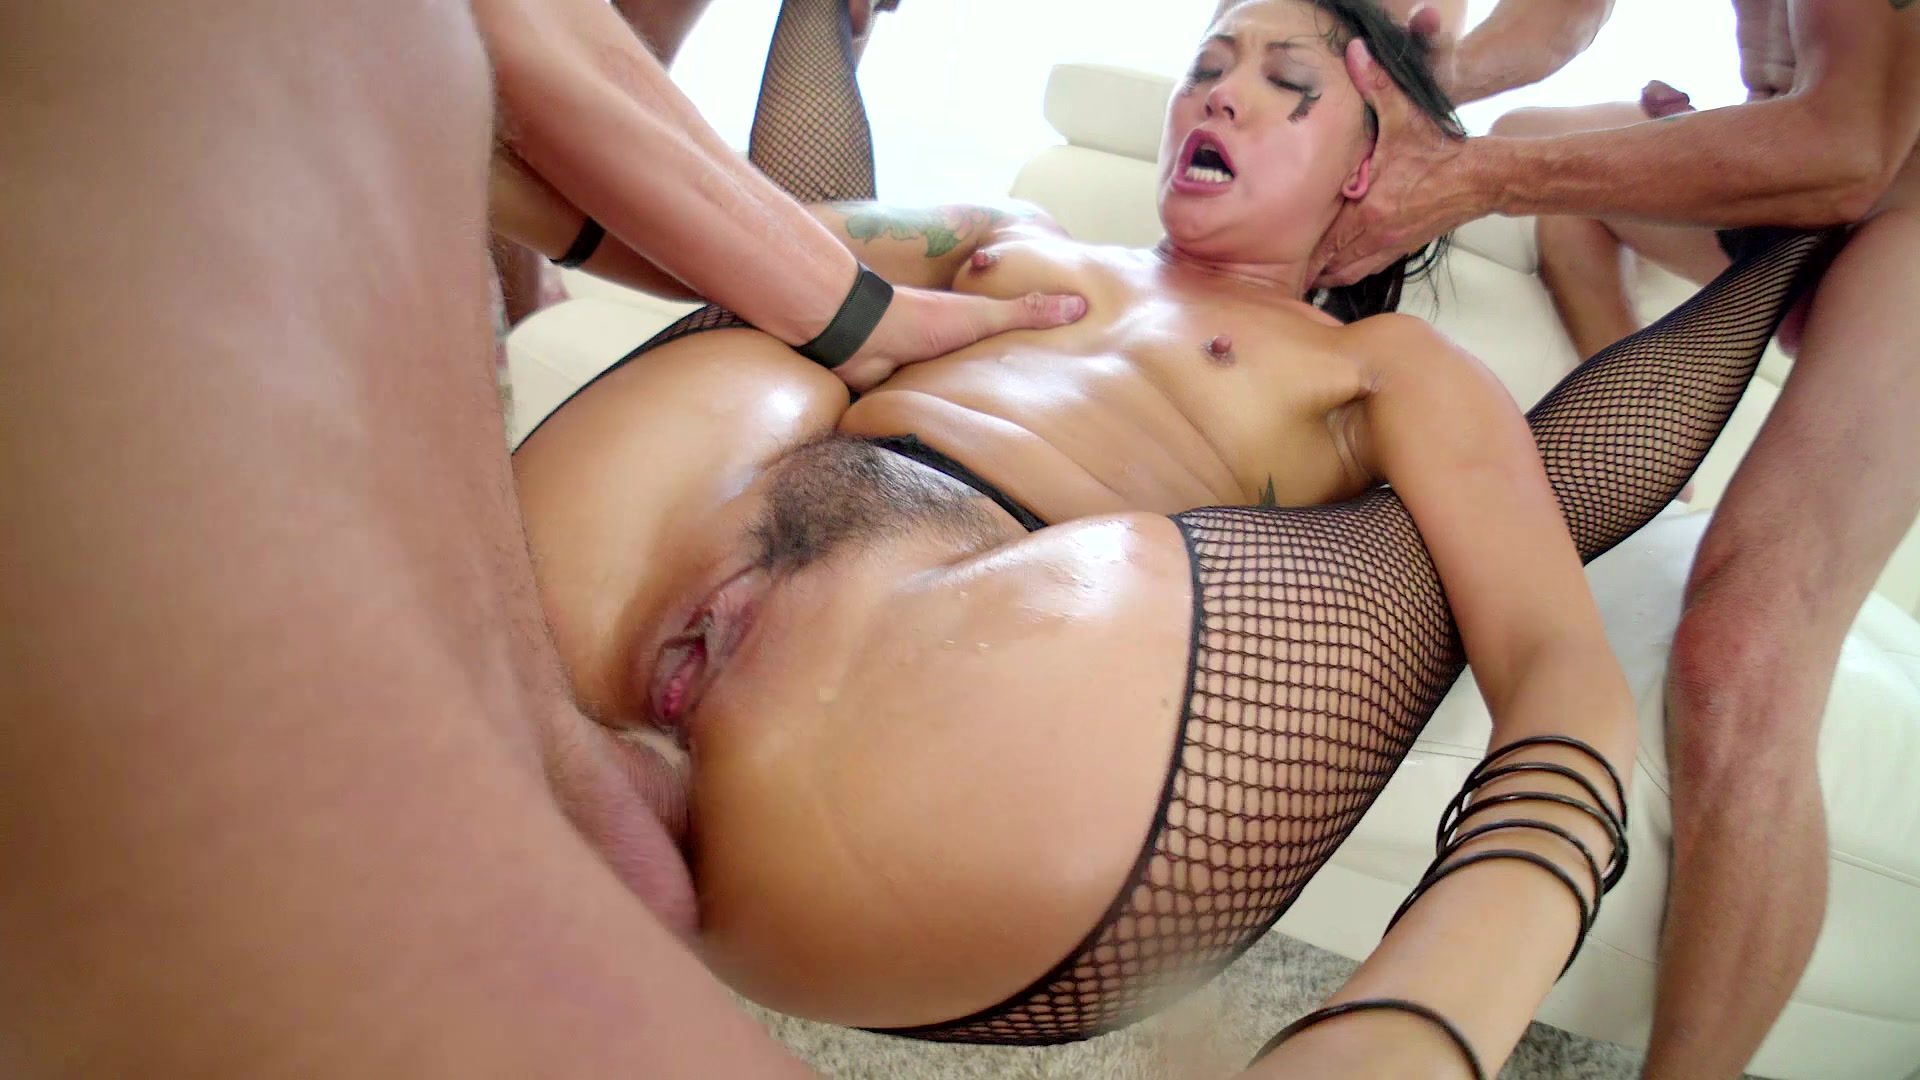 strapon-nude-hardcore-porn-video-sites-blow-job